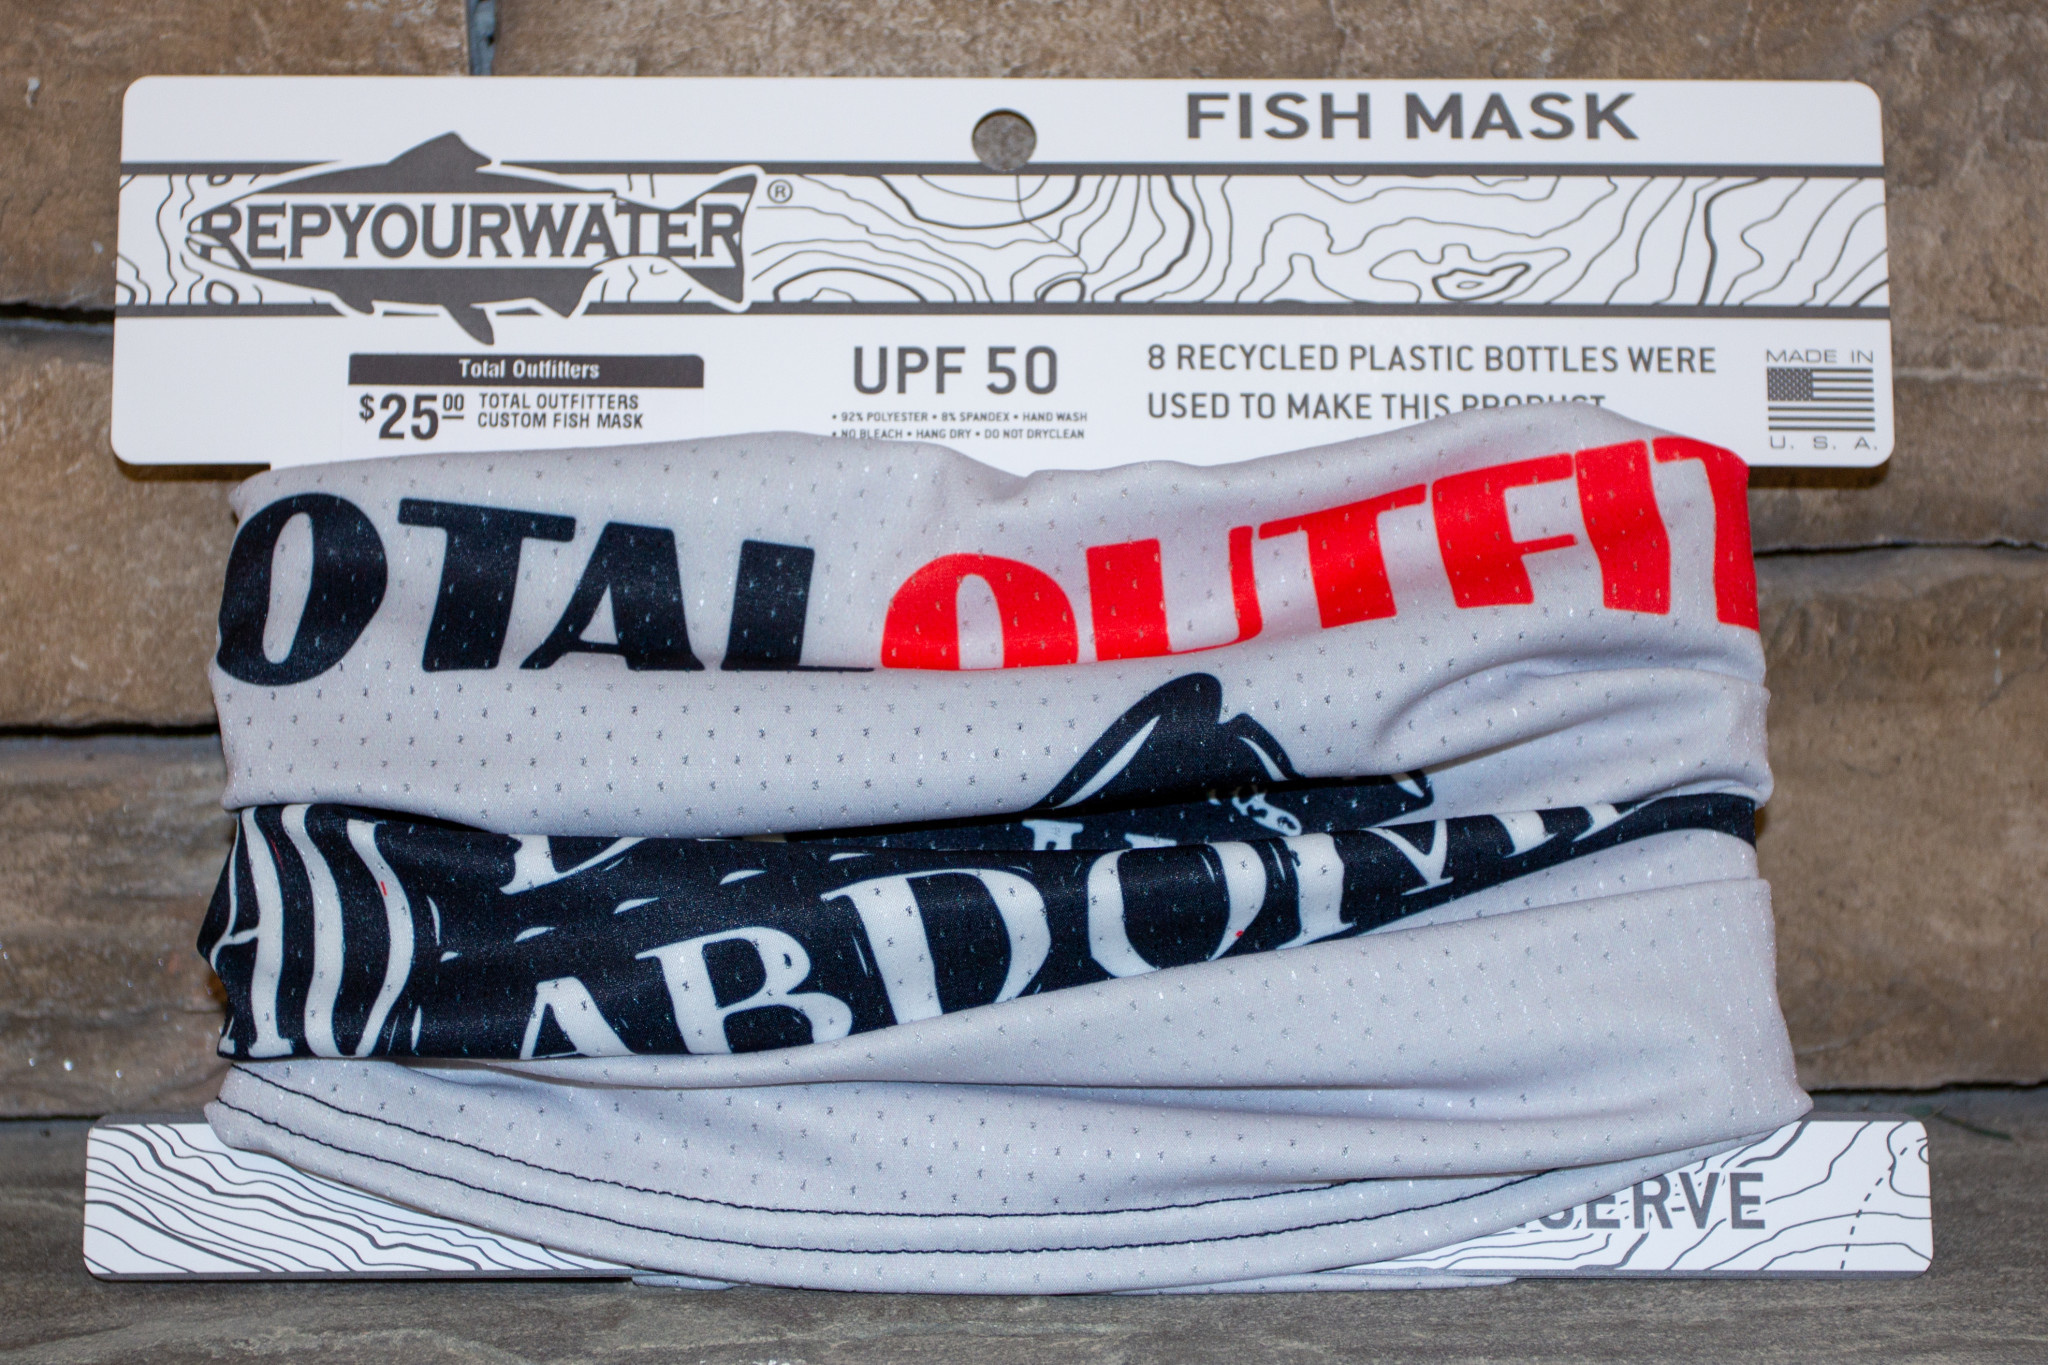 REP YOUR WATER CUSTOM FISH MASK BY REPYOURWATER